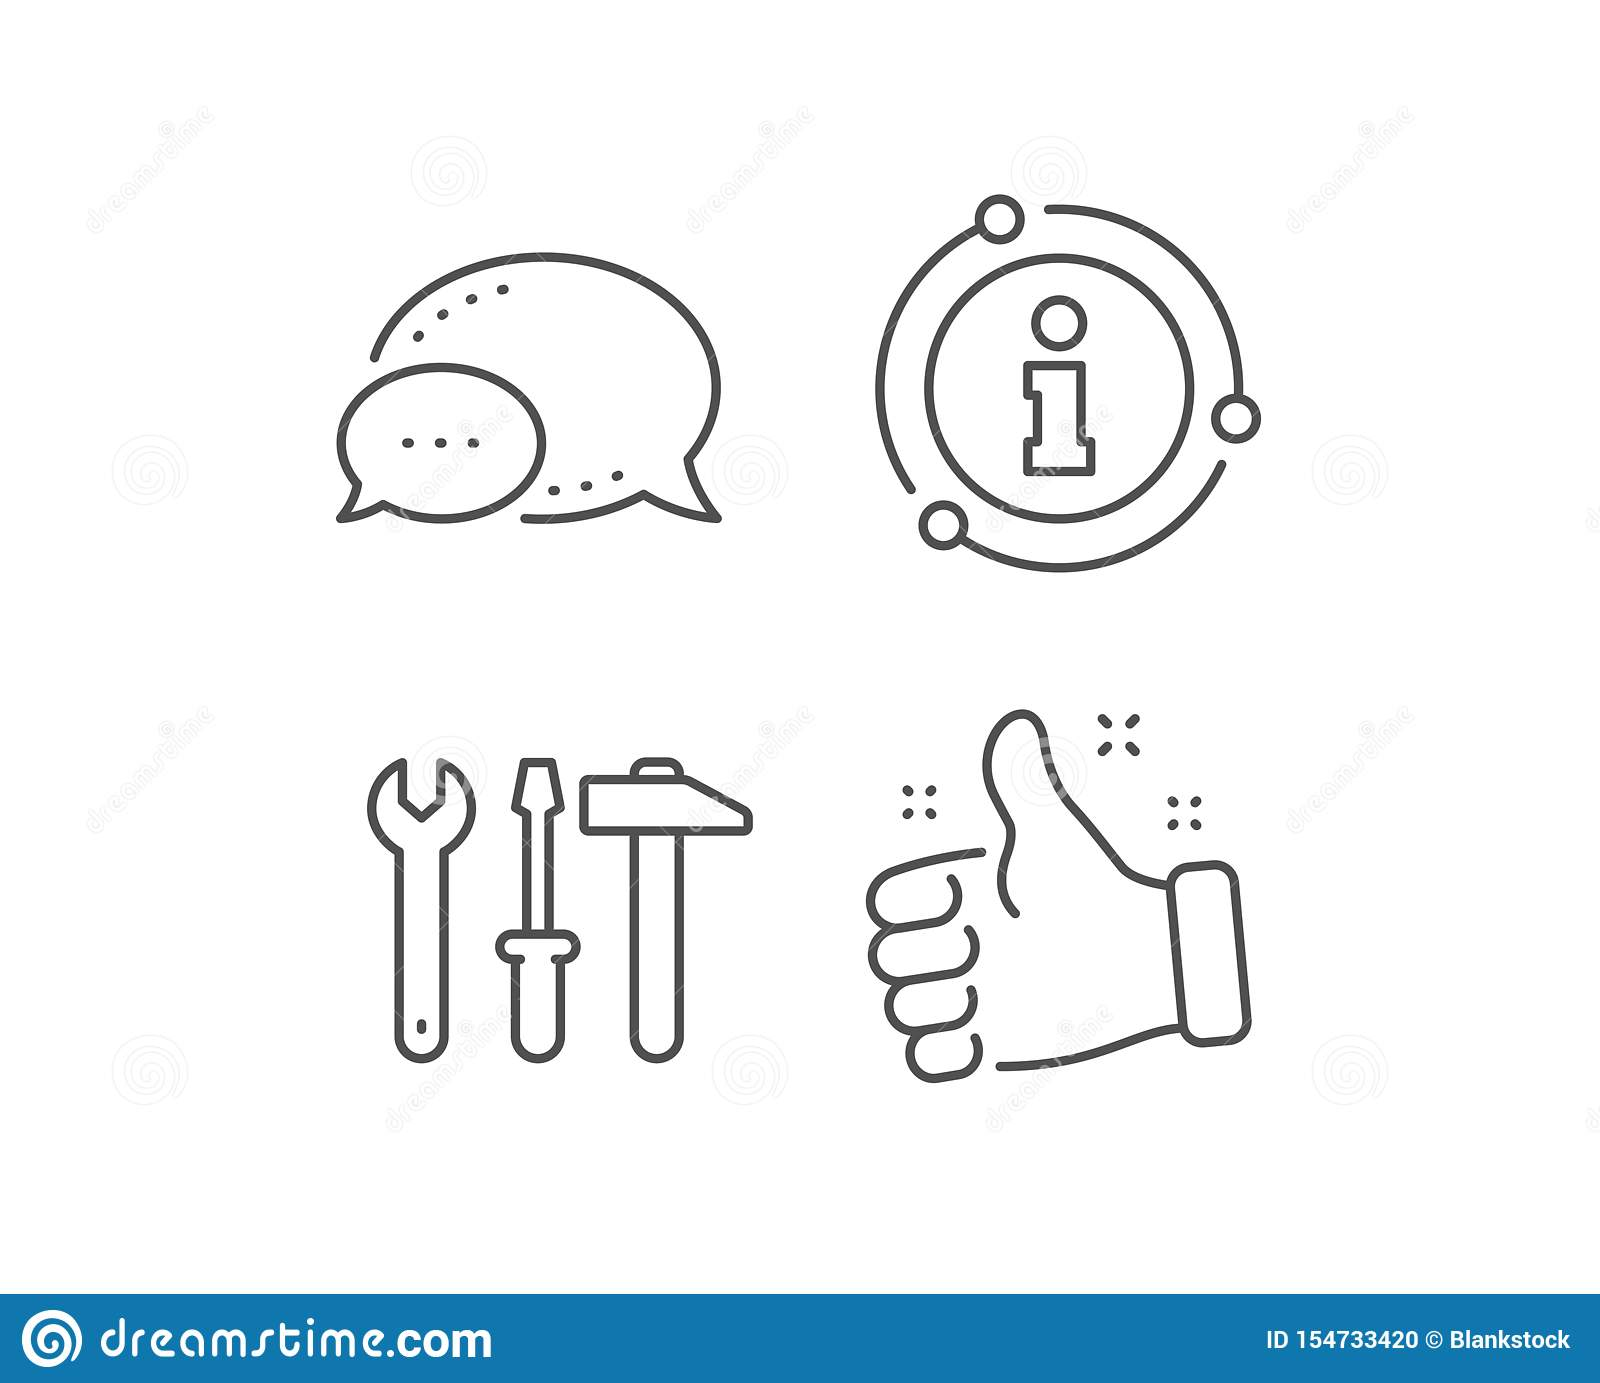 Maintenance Services Sign Spanner Troubleshooting Icon: Spanner, Hammer And Screwdriver Line Icon. Repair Service